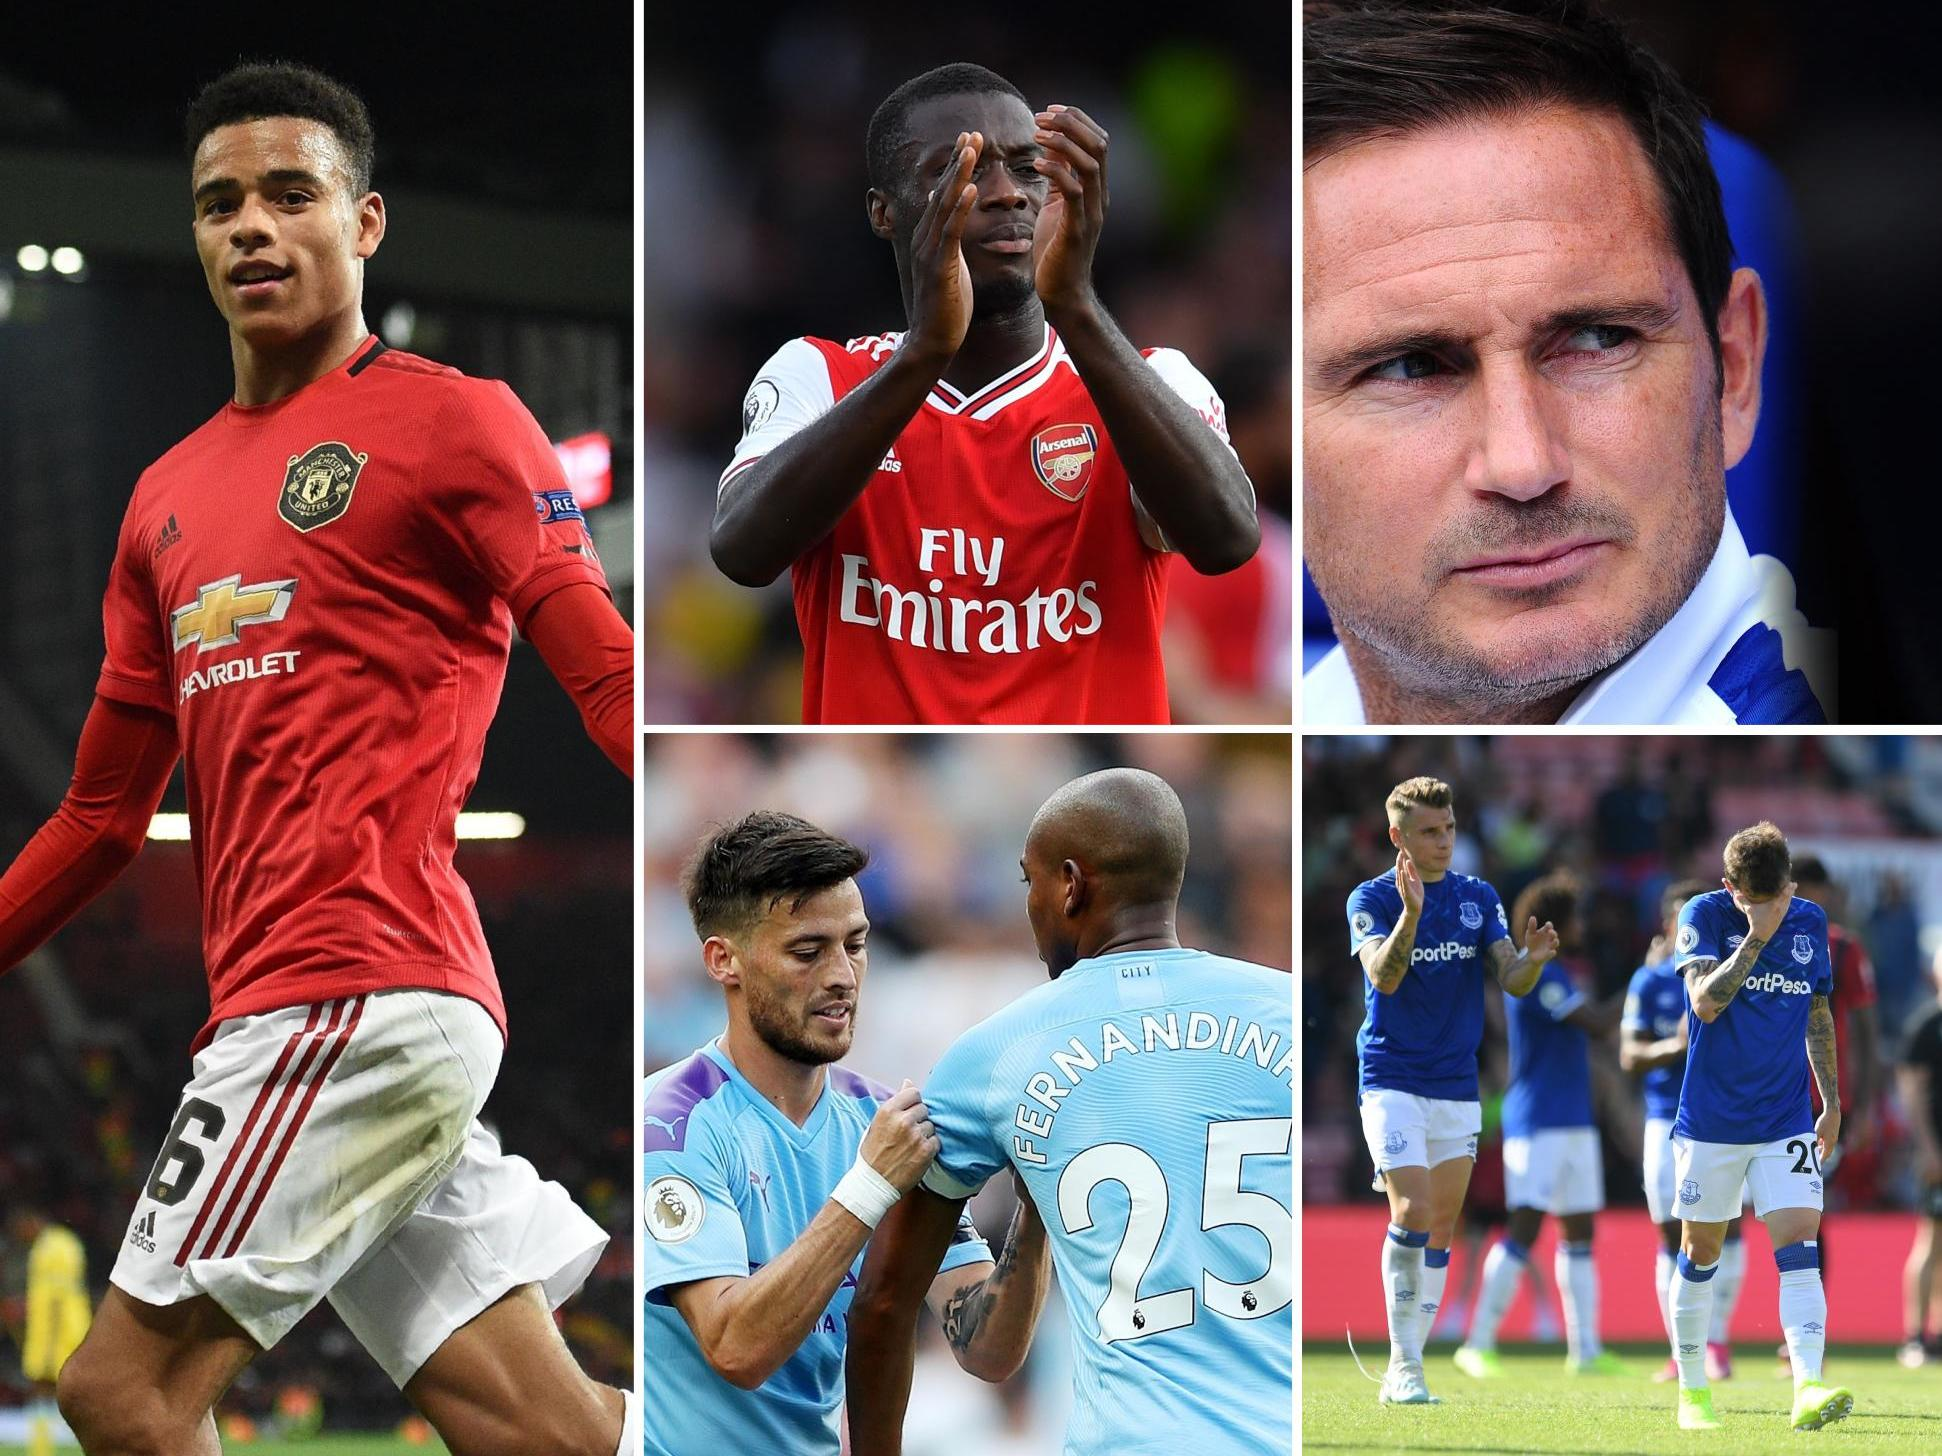 Premier League: 10 talking points ahead of the weekend's action as Chelsea and Liverpool gear up for goals